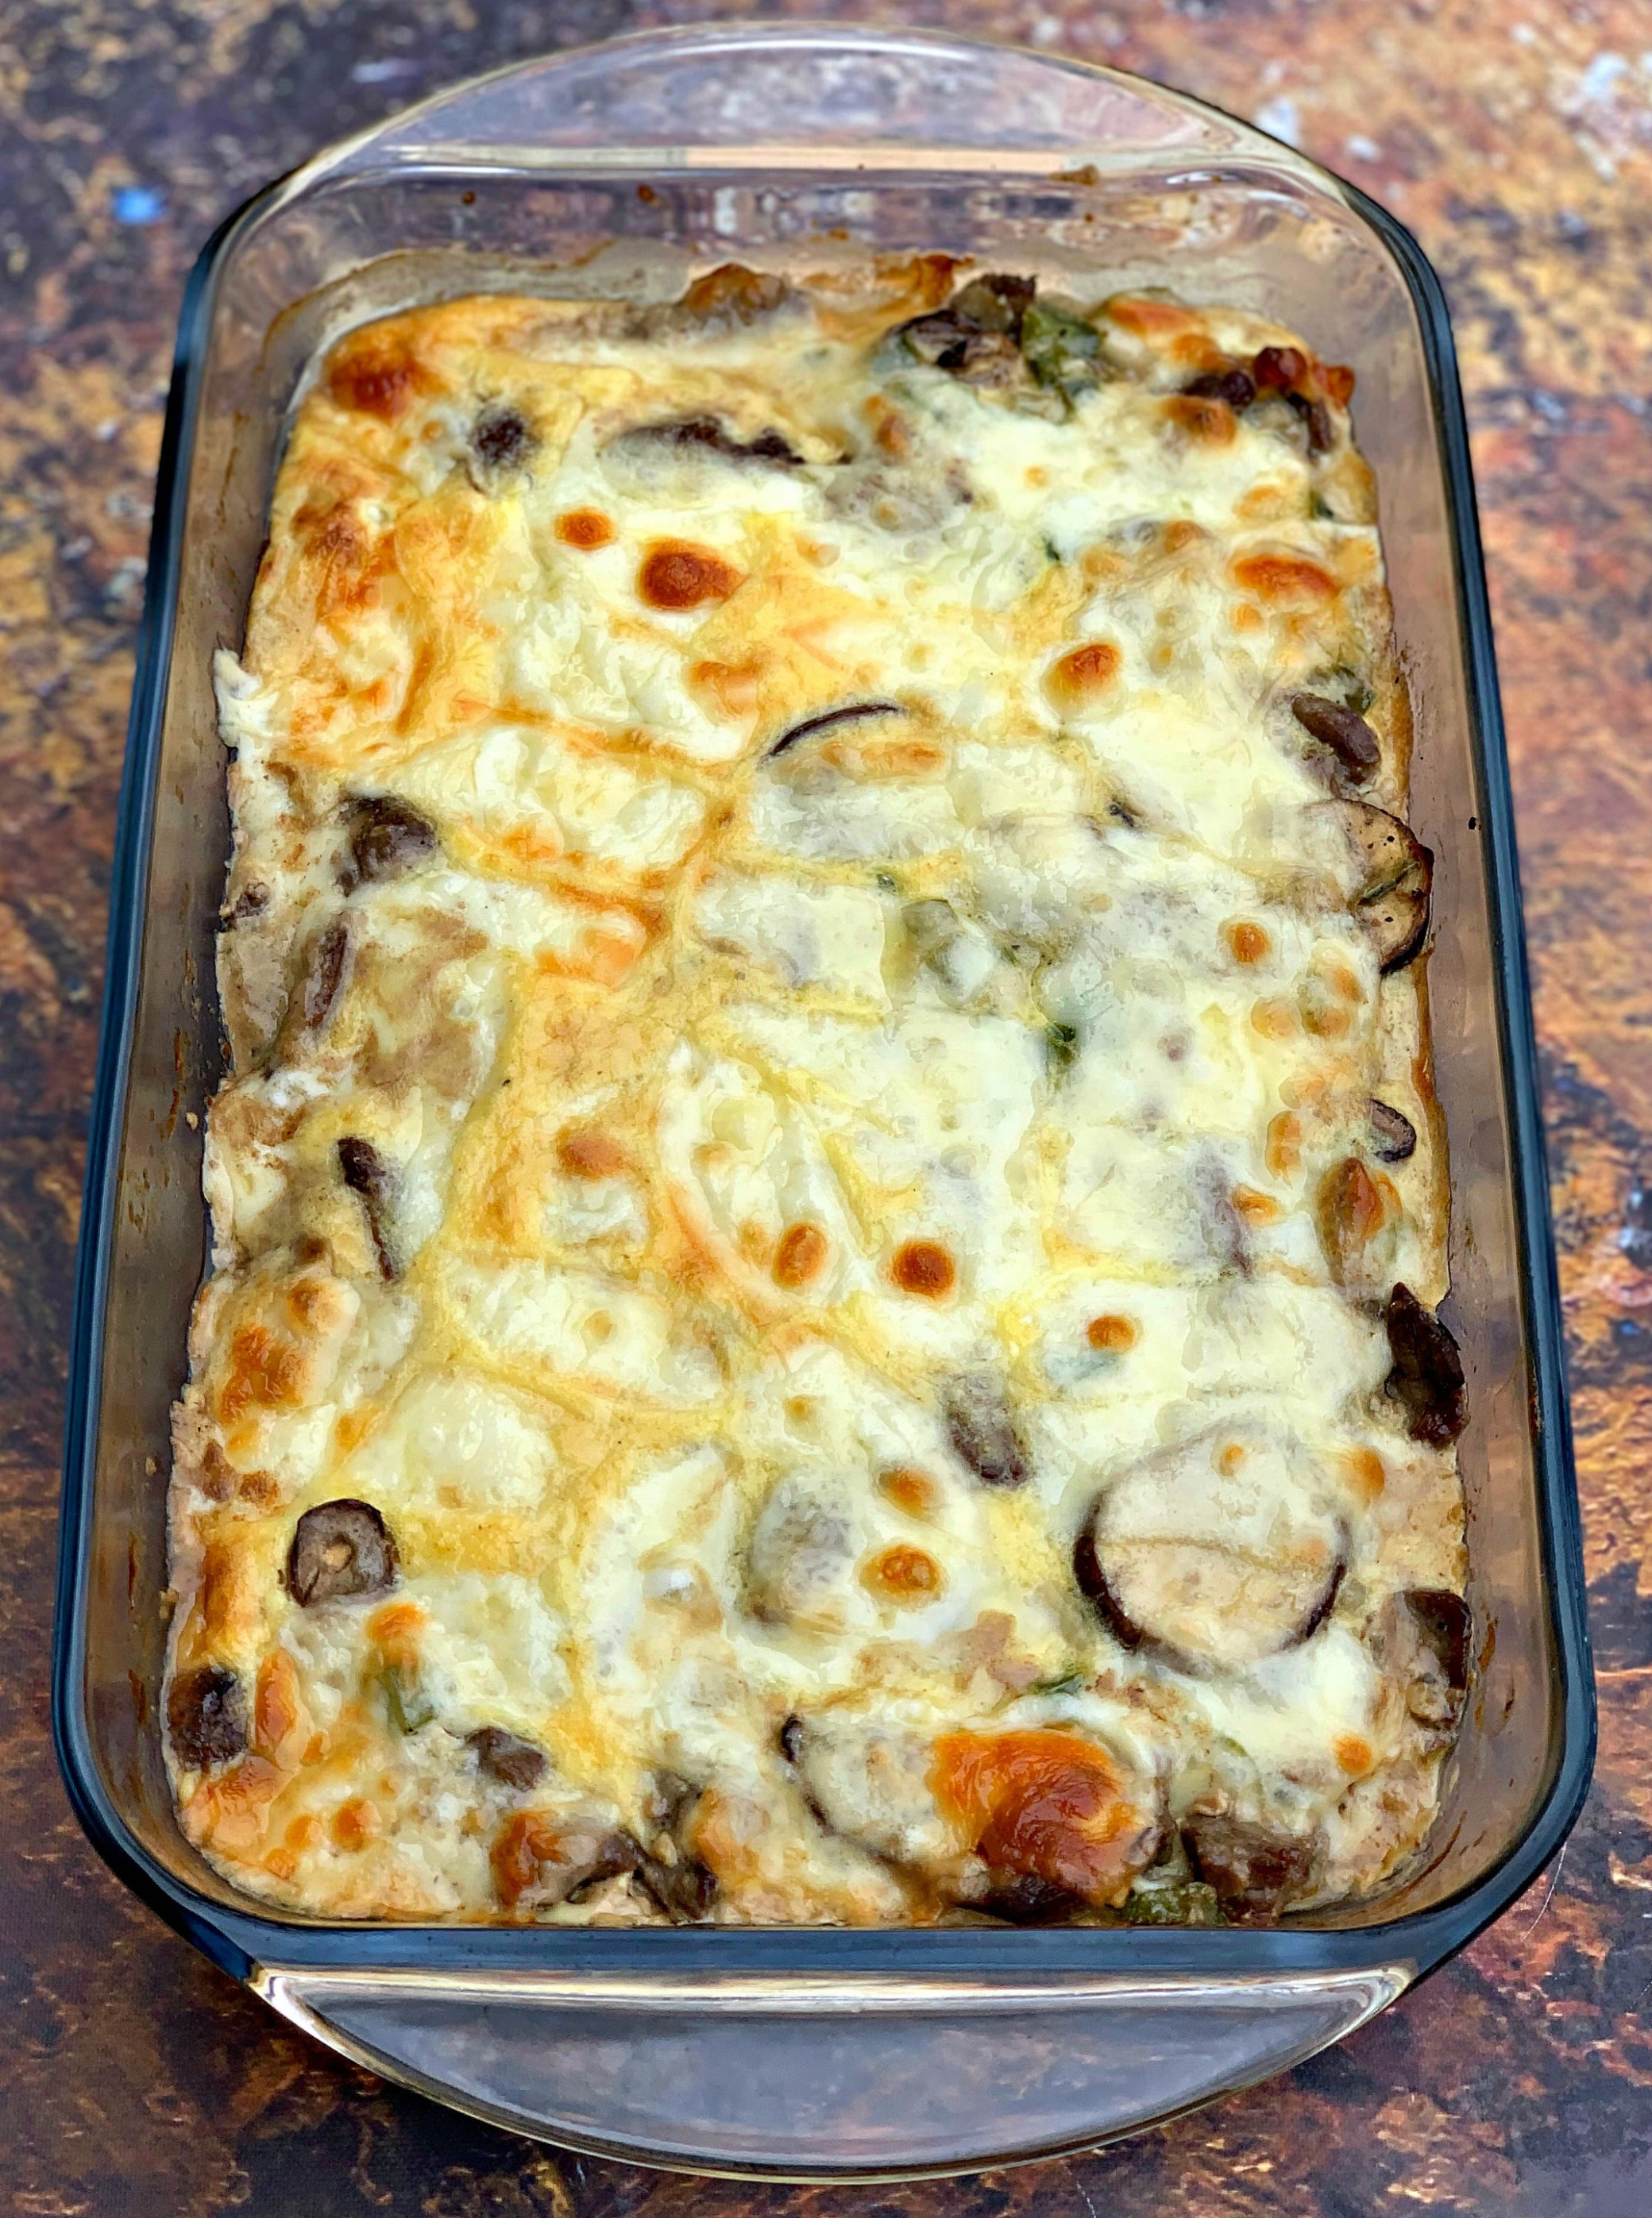 Keto Low Carb Philly Cheese Steak Casserole